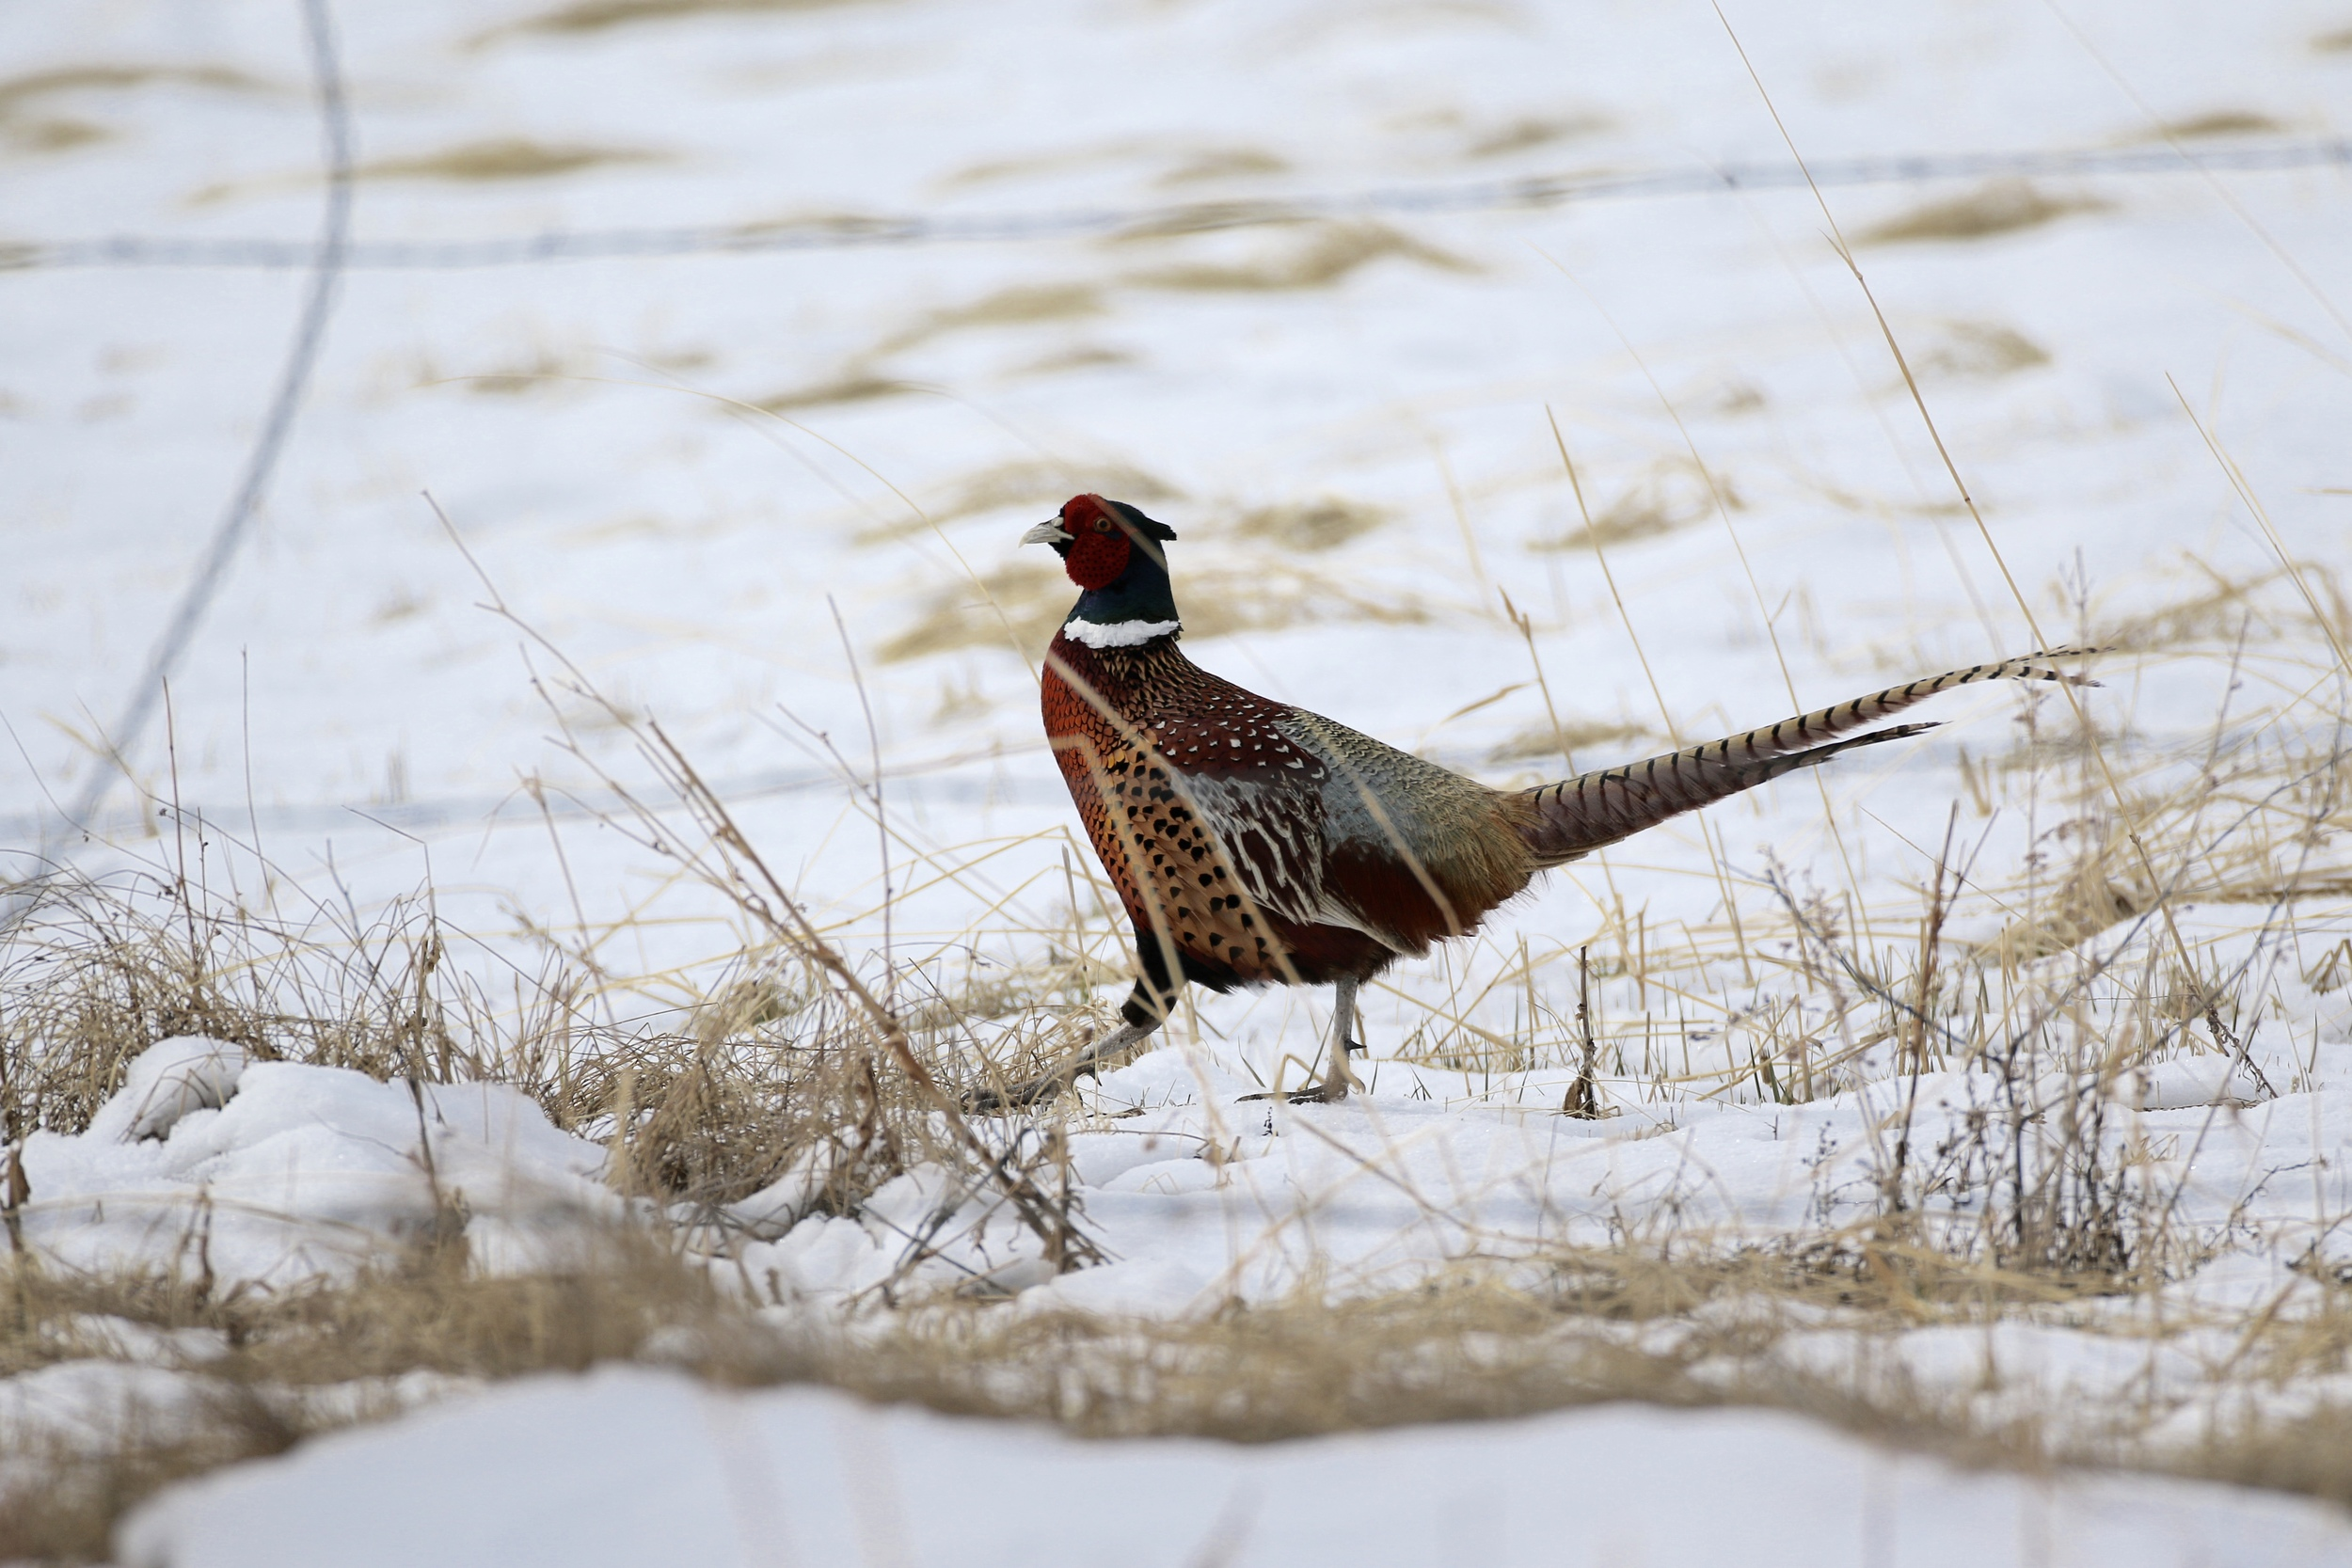 A Ring-necked Pheasant crosses a snowy field near Lander, WY